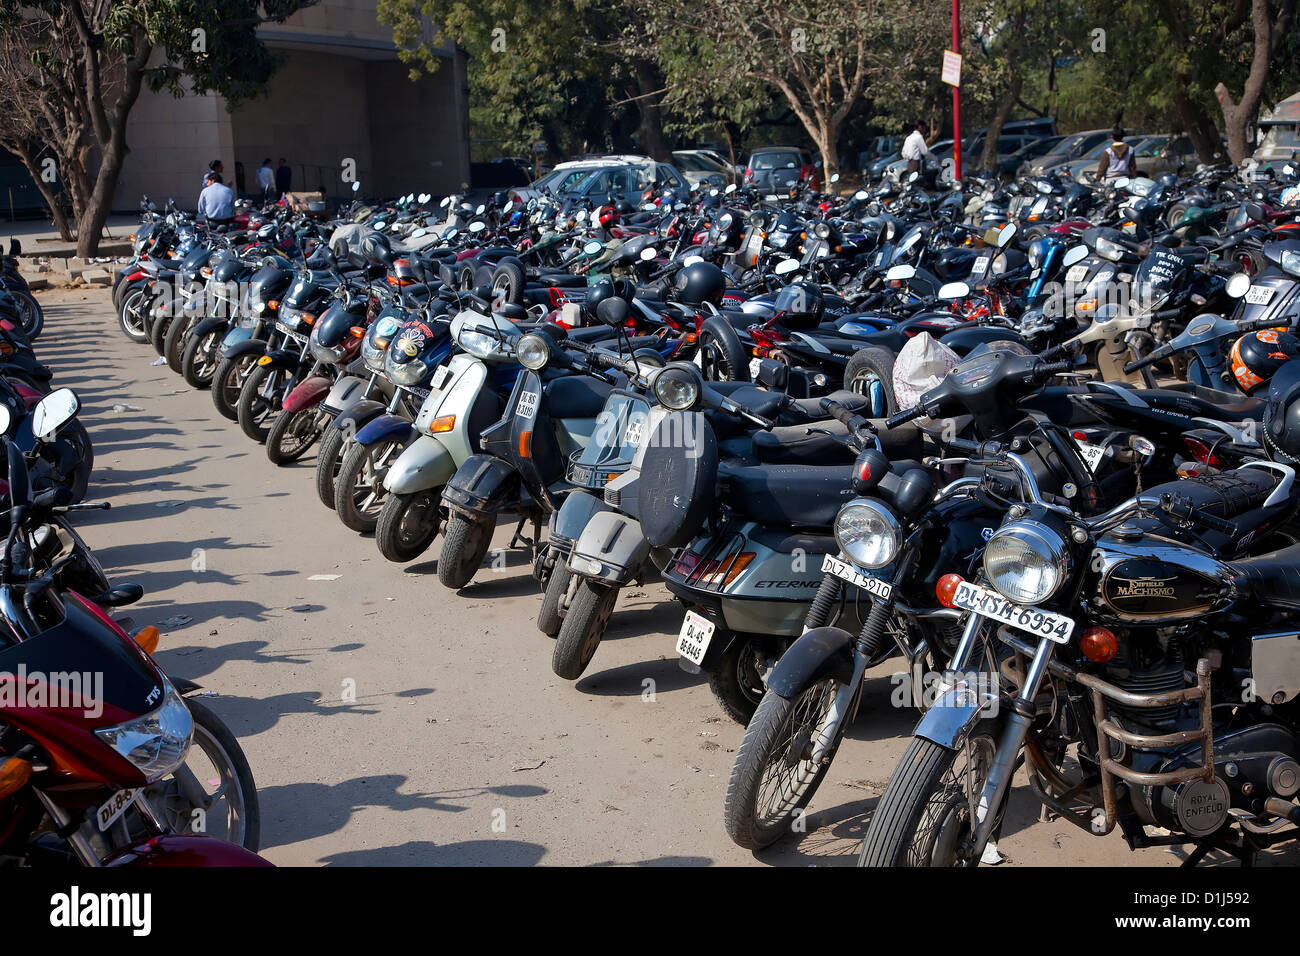 A authorize parking at new Delhi,India - Stock Image